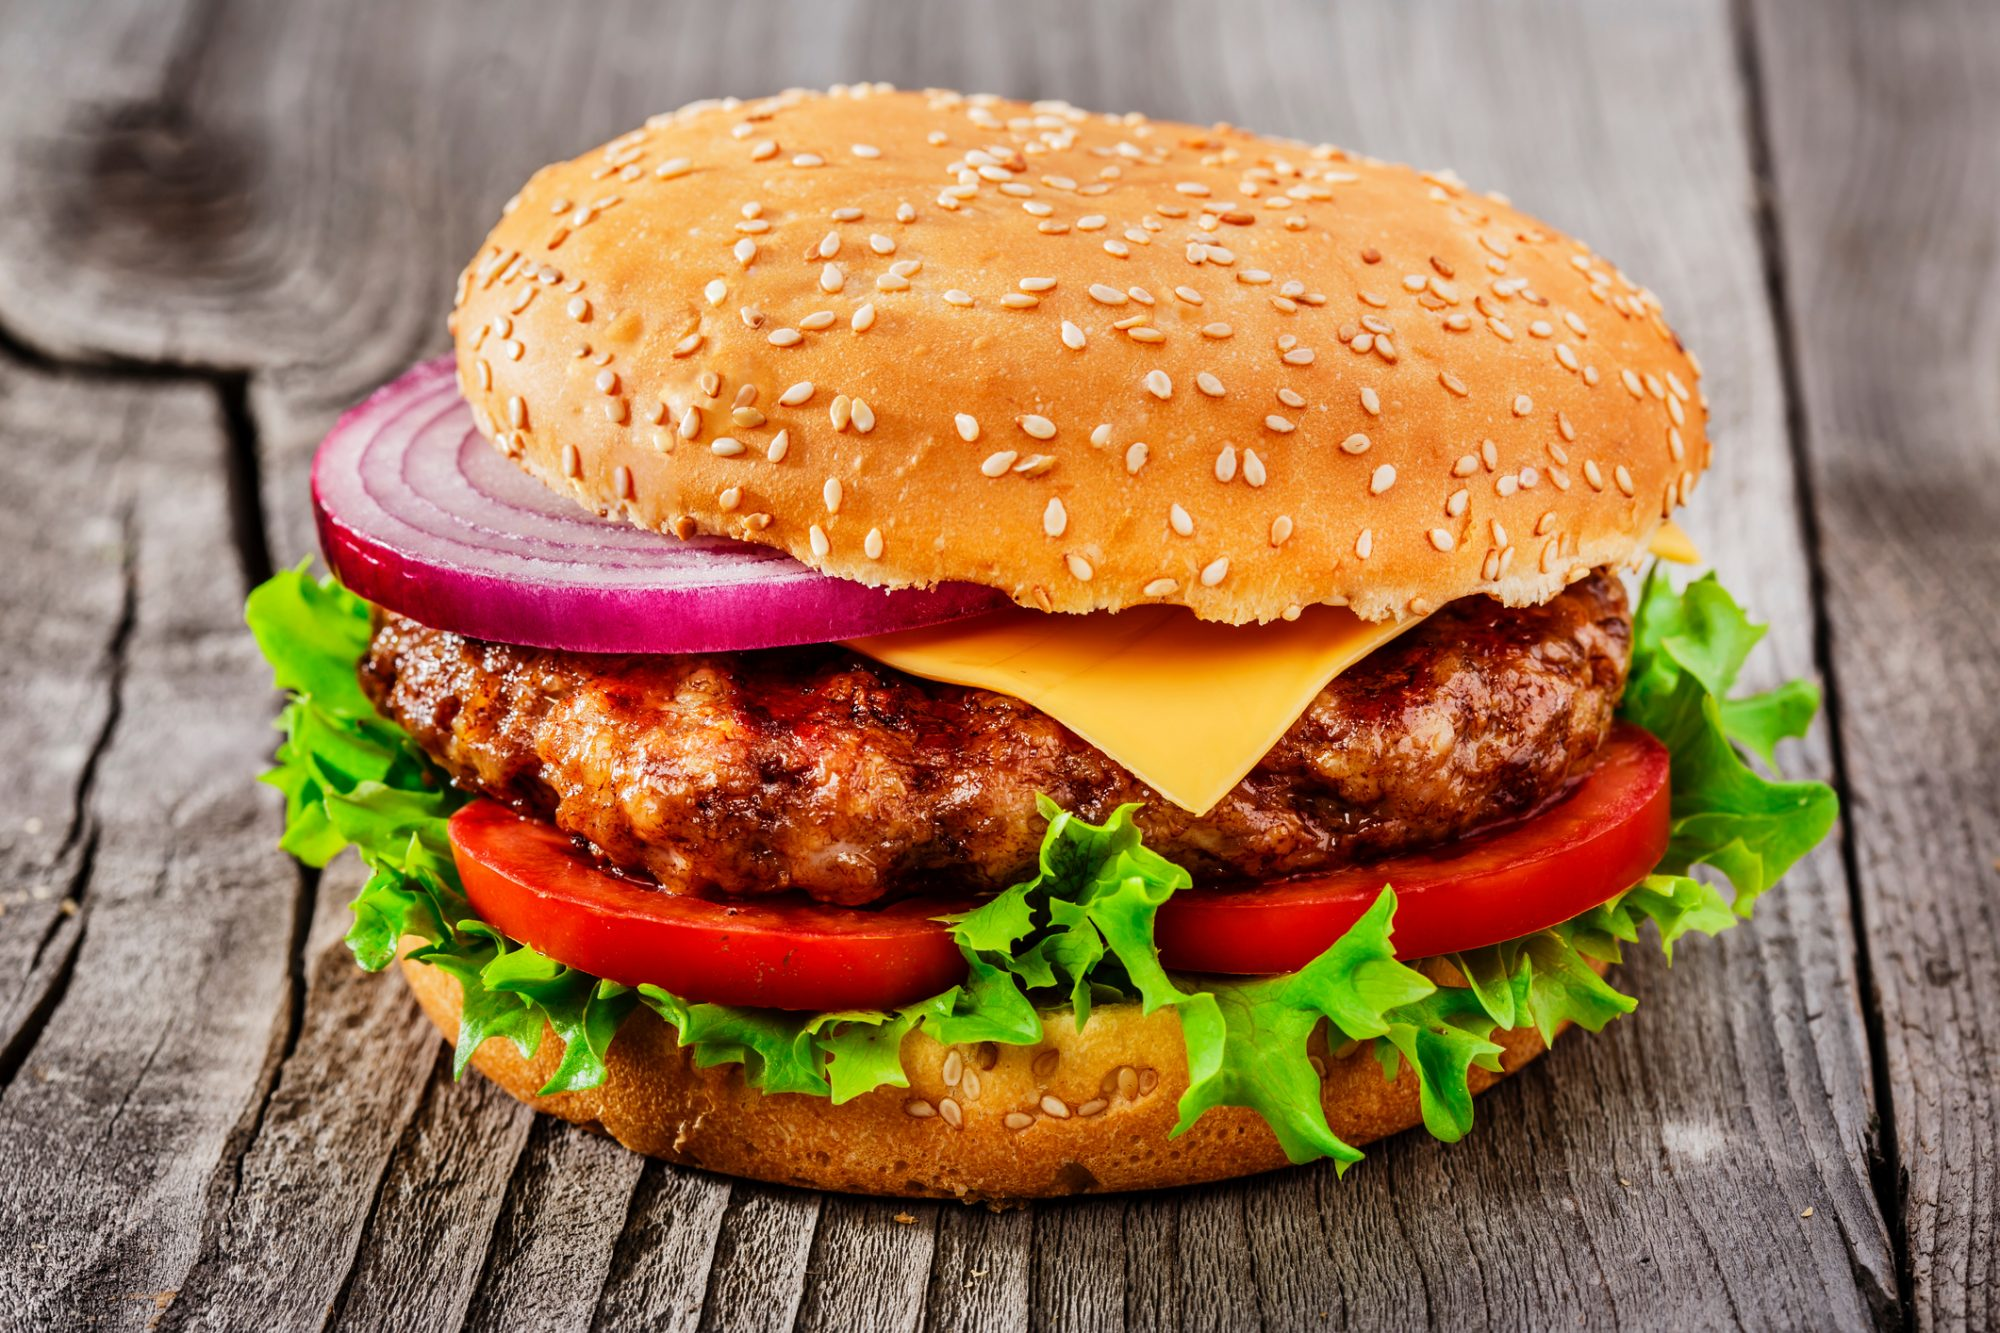 getty-grilled-burger-image